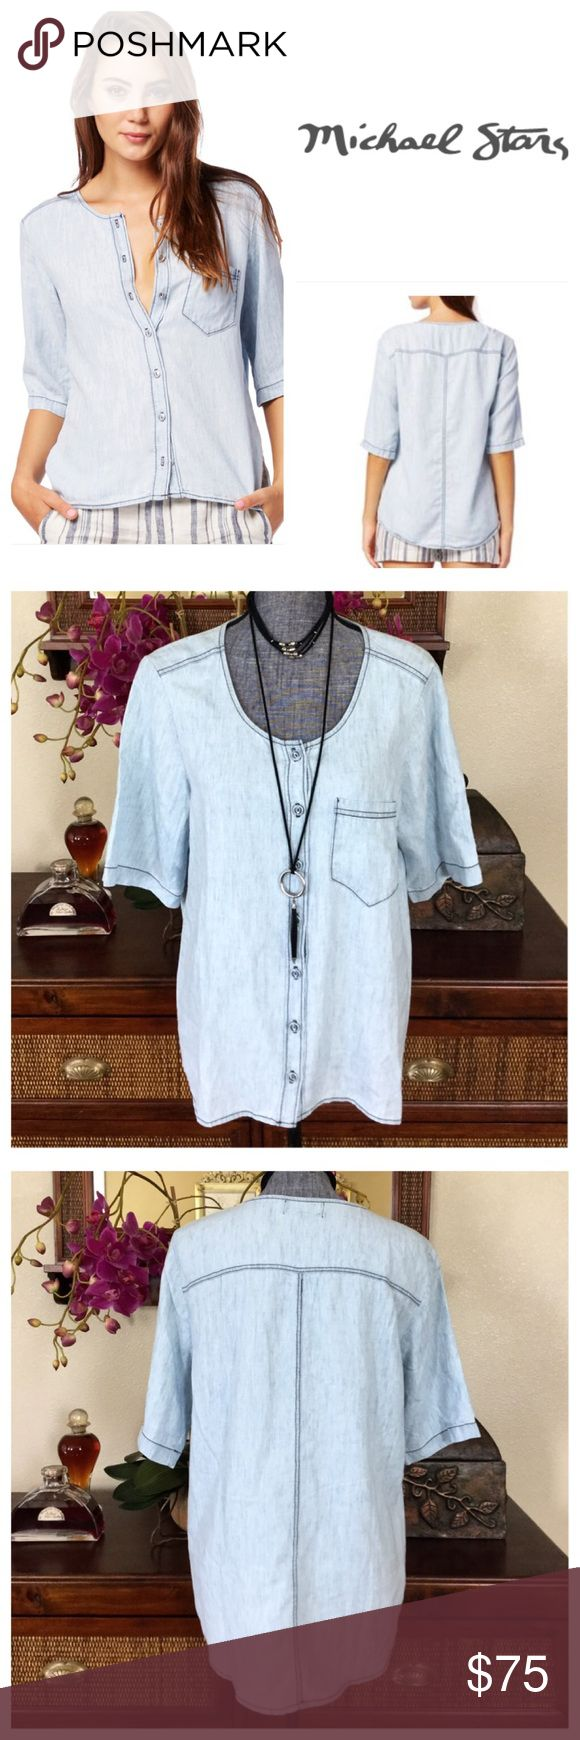 "Michael Stars Bleach Wash Linen Denim Shirt.  NWT. Michael Stars Bleach Wash Linen Denim Tencel Button Down, 70% tencel, 30% linen, machine washable, 20"" armpit to armpit (40"" all around), 18.5"" arm inseam, 26"" shortest point length, 29"" longest point length, button down front, short sleeve, chest pocket, collarless, scoop neckline, unlined, high low hem, measurements are approx.  NO TRADES Michael Stars Tops Button Down Shirts"